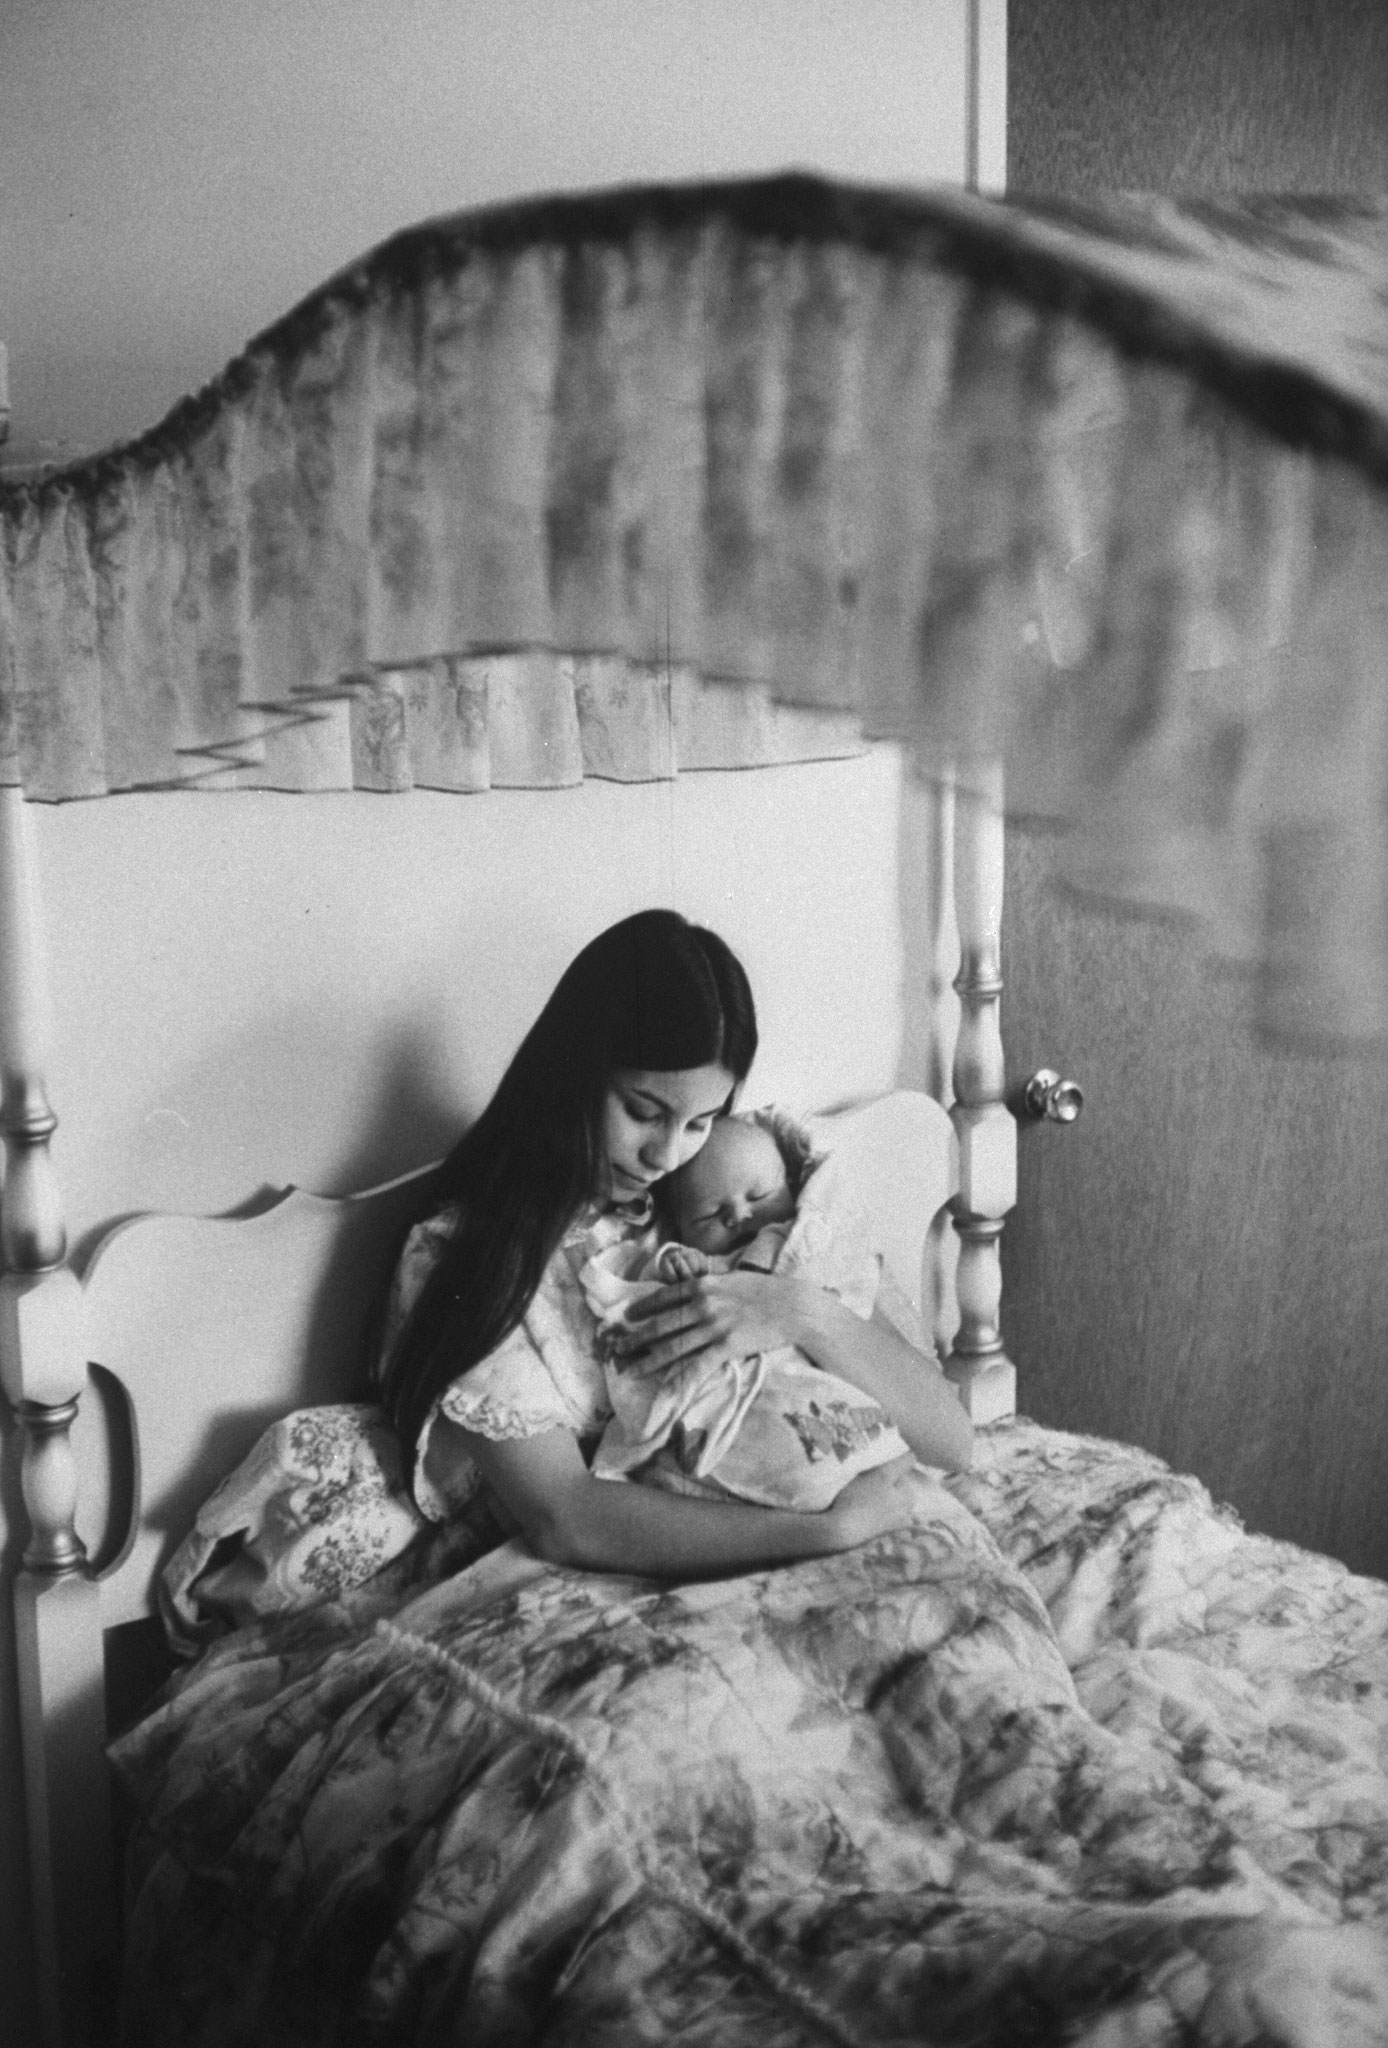 <b>Caption from LIFE.</b> In the canopied bed where she has slept since childhood, Judy cuddles her son Dylan, who was born in late February. 'My son may have been unplanned,' Judy says, 'but he is not unloved.